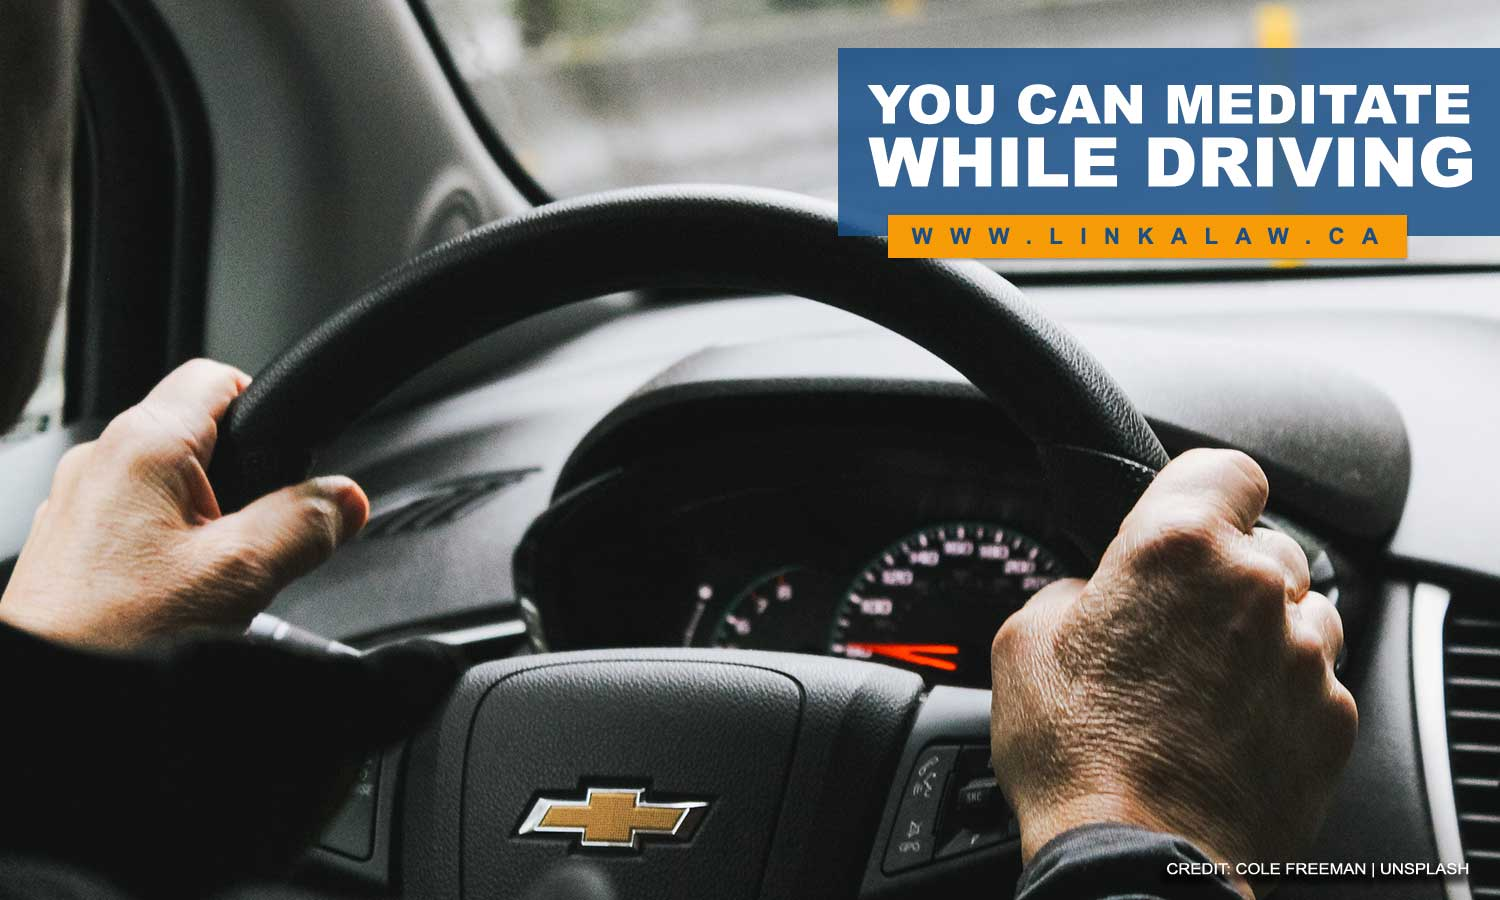 You can meditate while driving